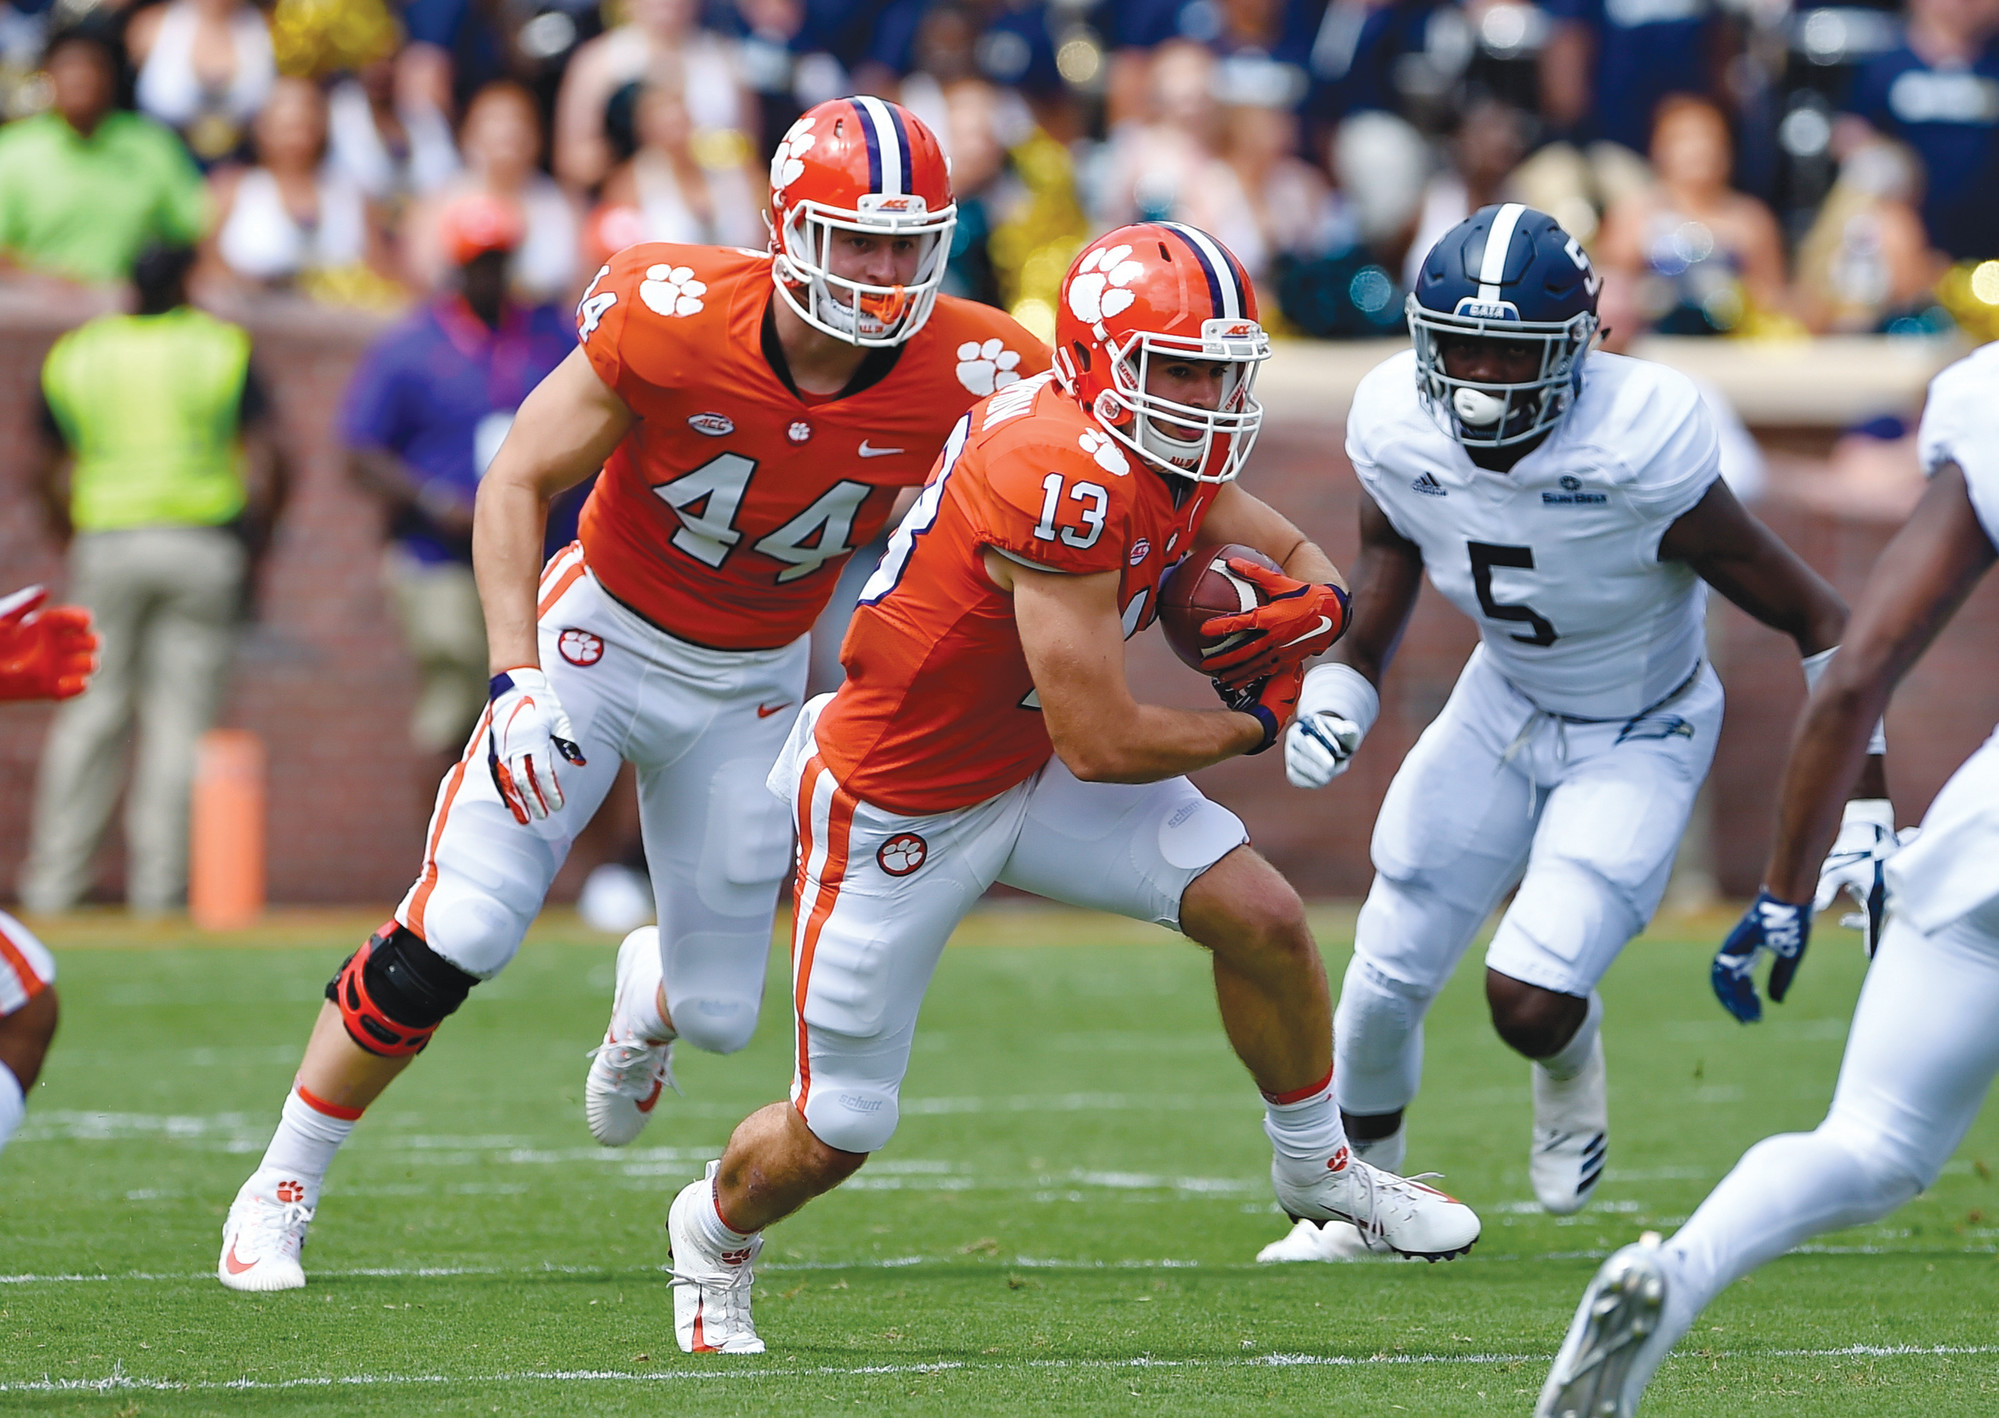 Clemson's Hunter Renfrow (13) avoids the tackle attempt by Georgia Southern's Jay Bowdry (5) with blocking help from Garrett Williams (44) during the first half of an NCAA college football game, Saturday, Sept. 15, 2018, in Clemson, S.C. Clemson won 38-7. (AP Photo/Richard Shiro)